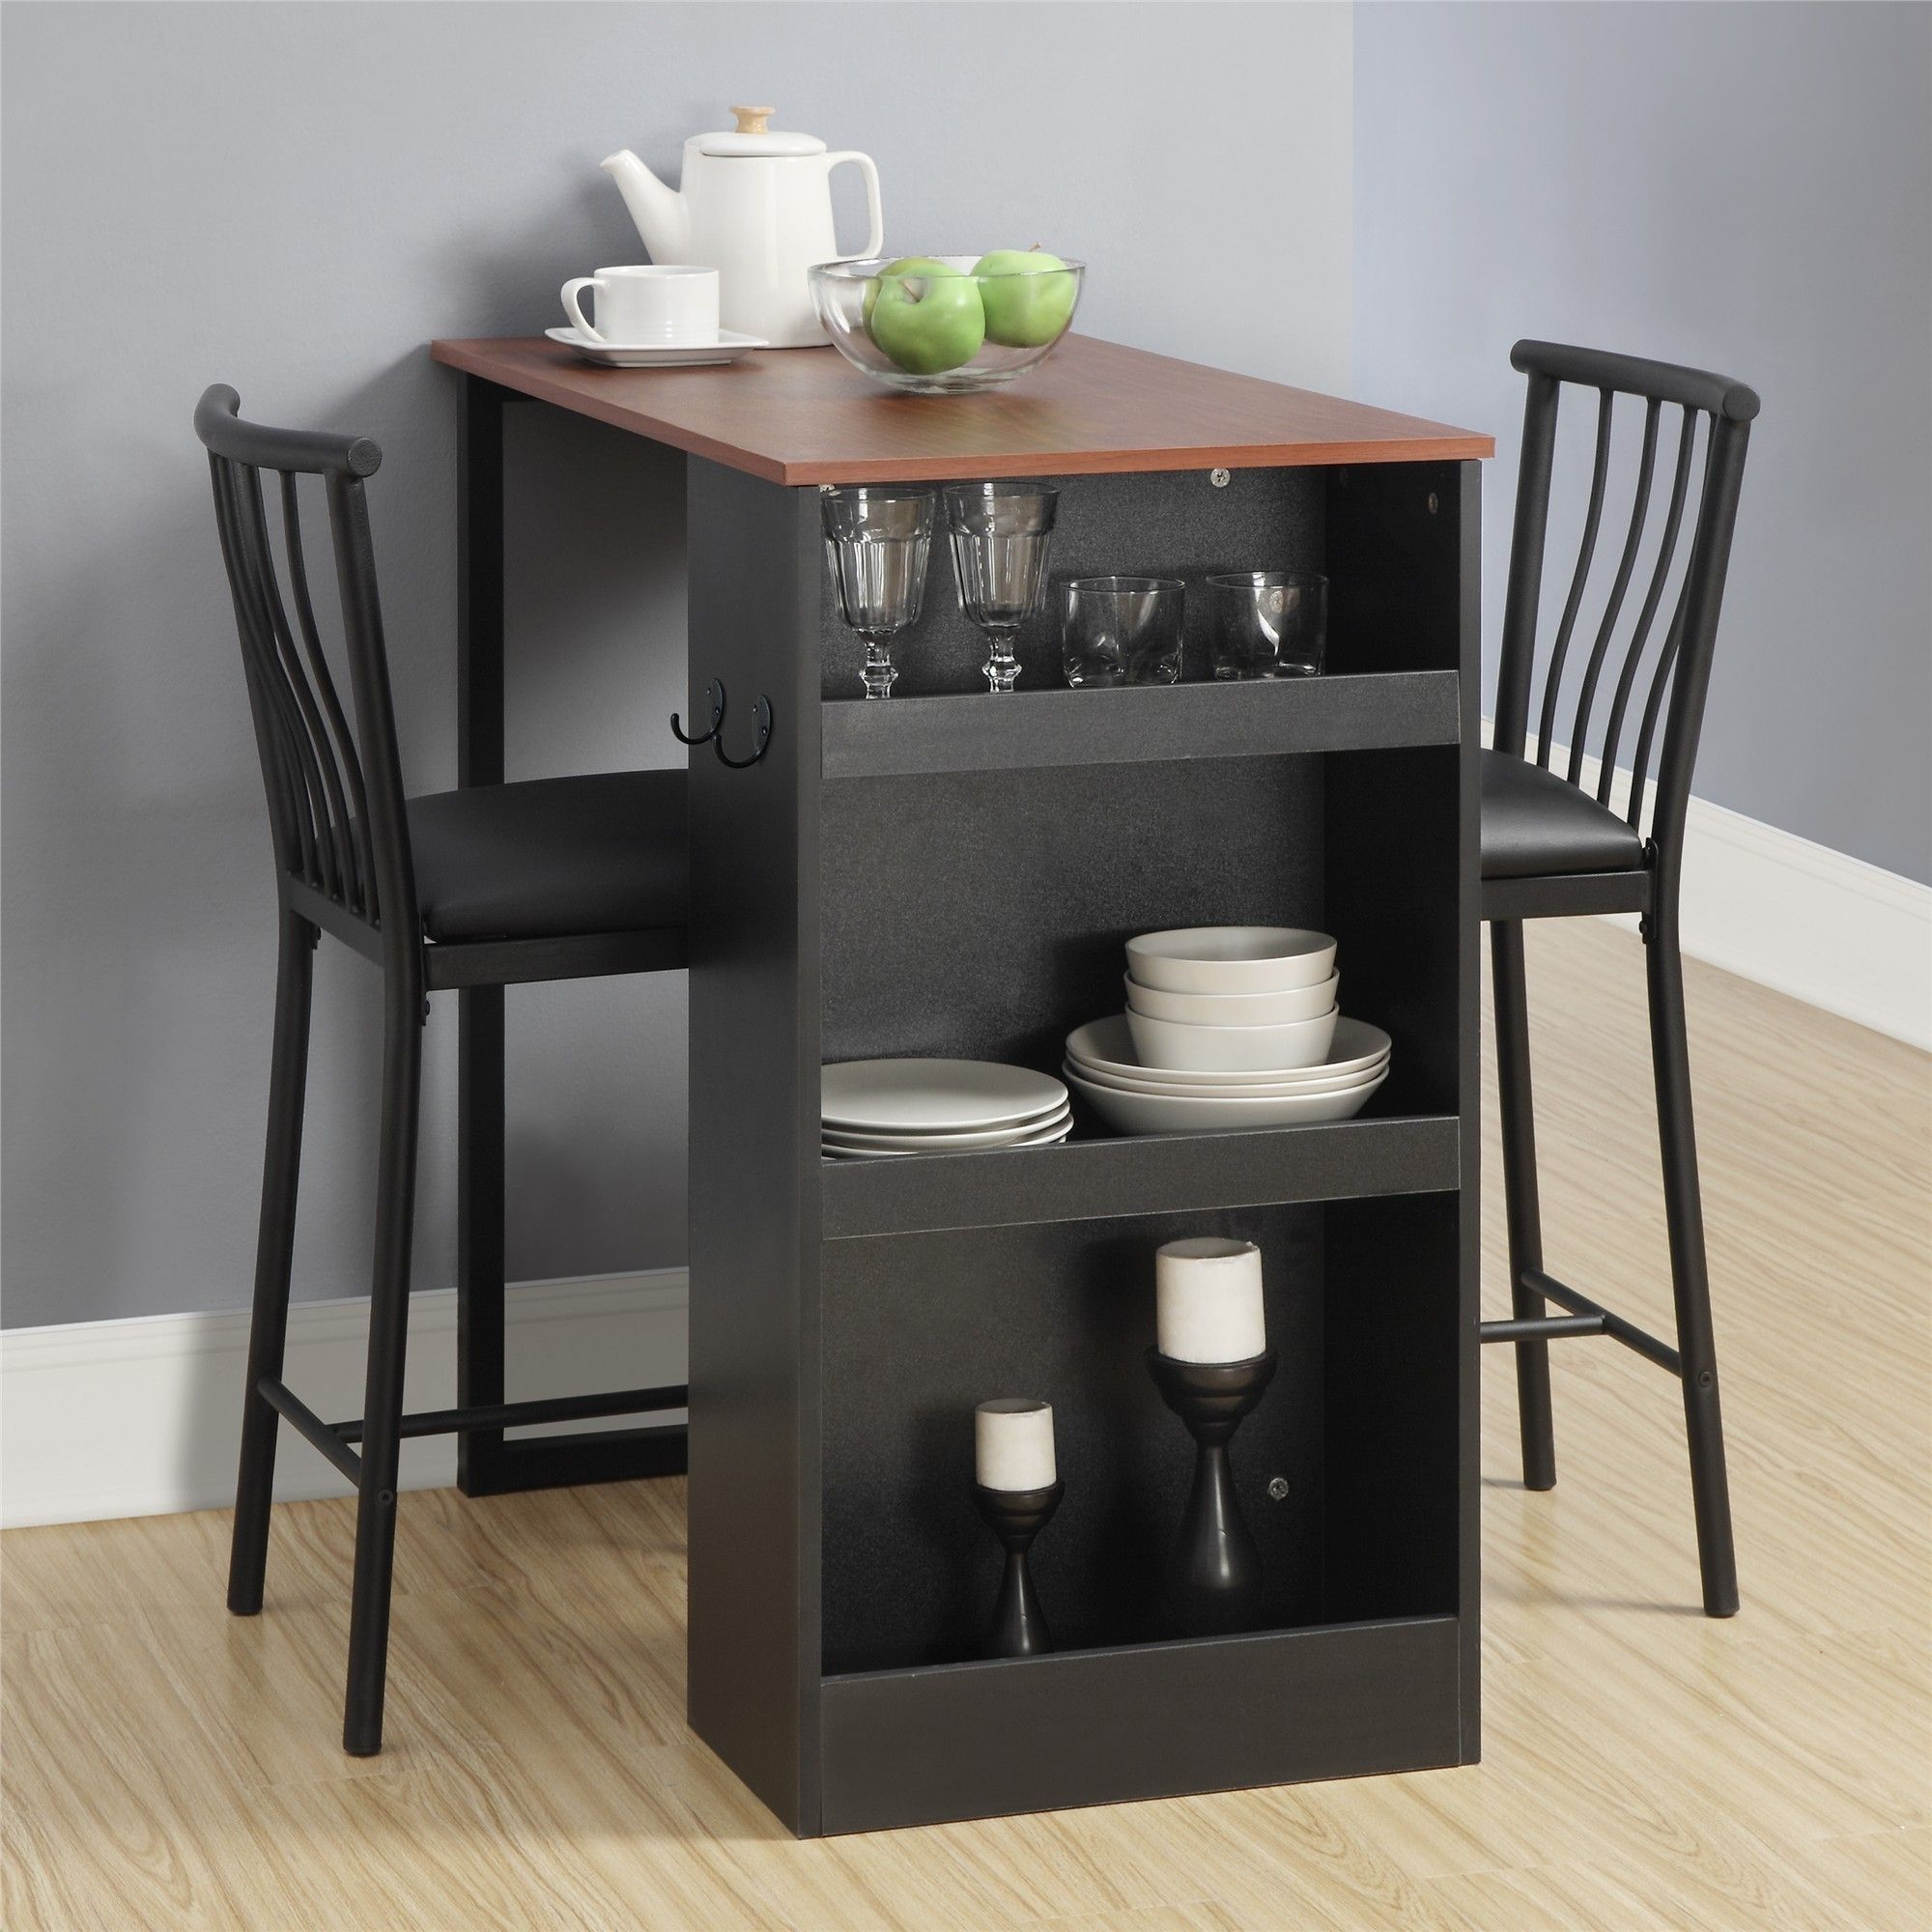 Avenue Greene 3 Pc Counter Height Bar Set (Black) | Home Within Newest Griffin Reclaimed Wood Bar Height Tables (View 4 of 25)